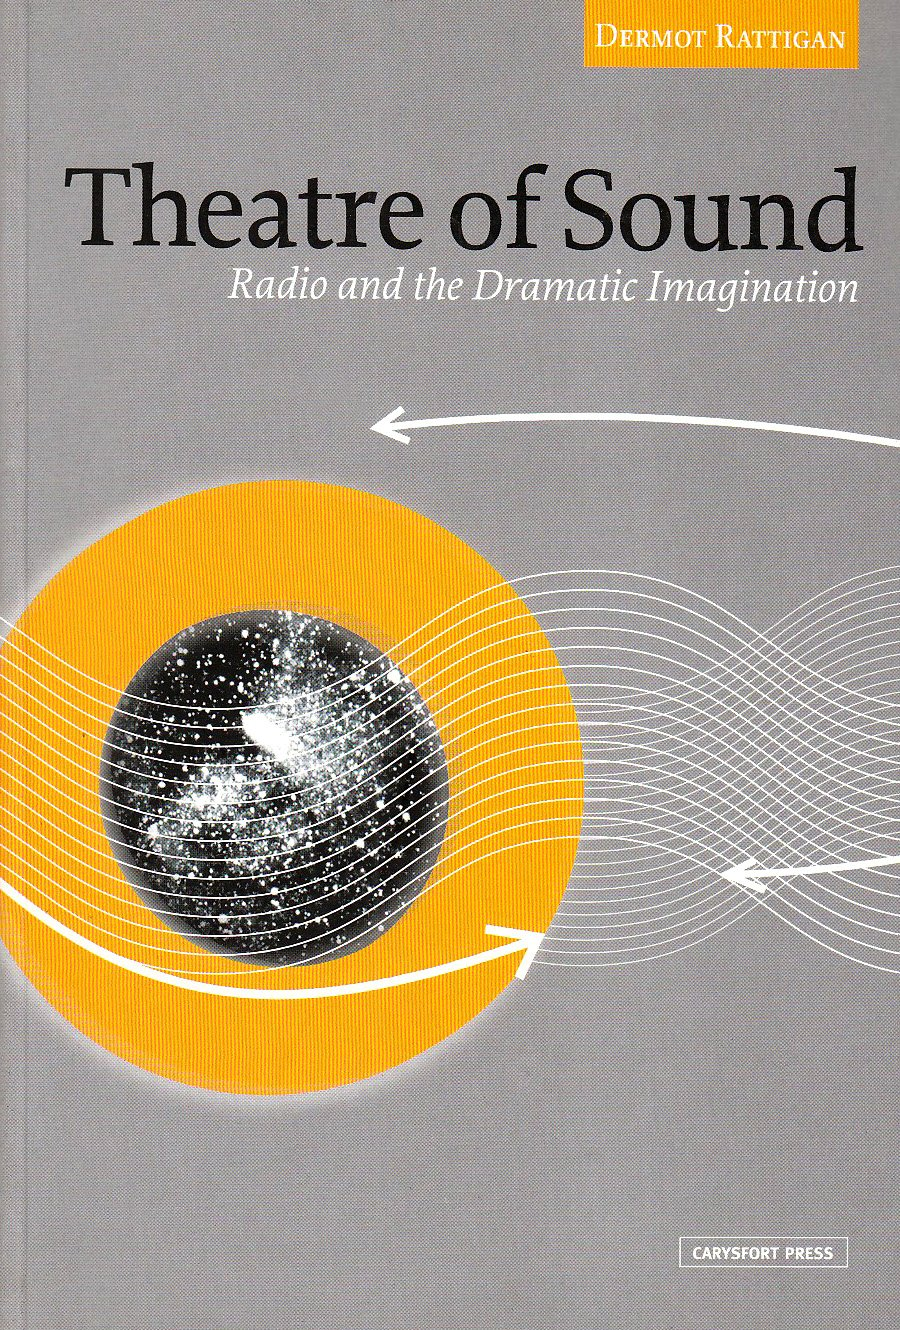 Theatre of Sound: Radio and the Dramatic Imagination book written by Dermot Rattigan